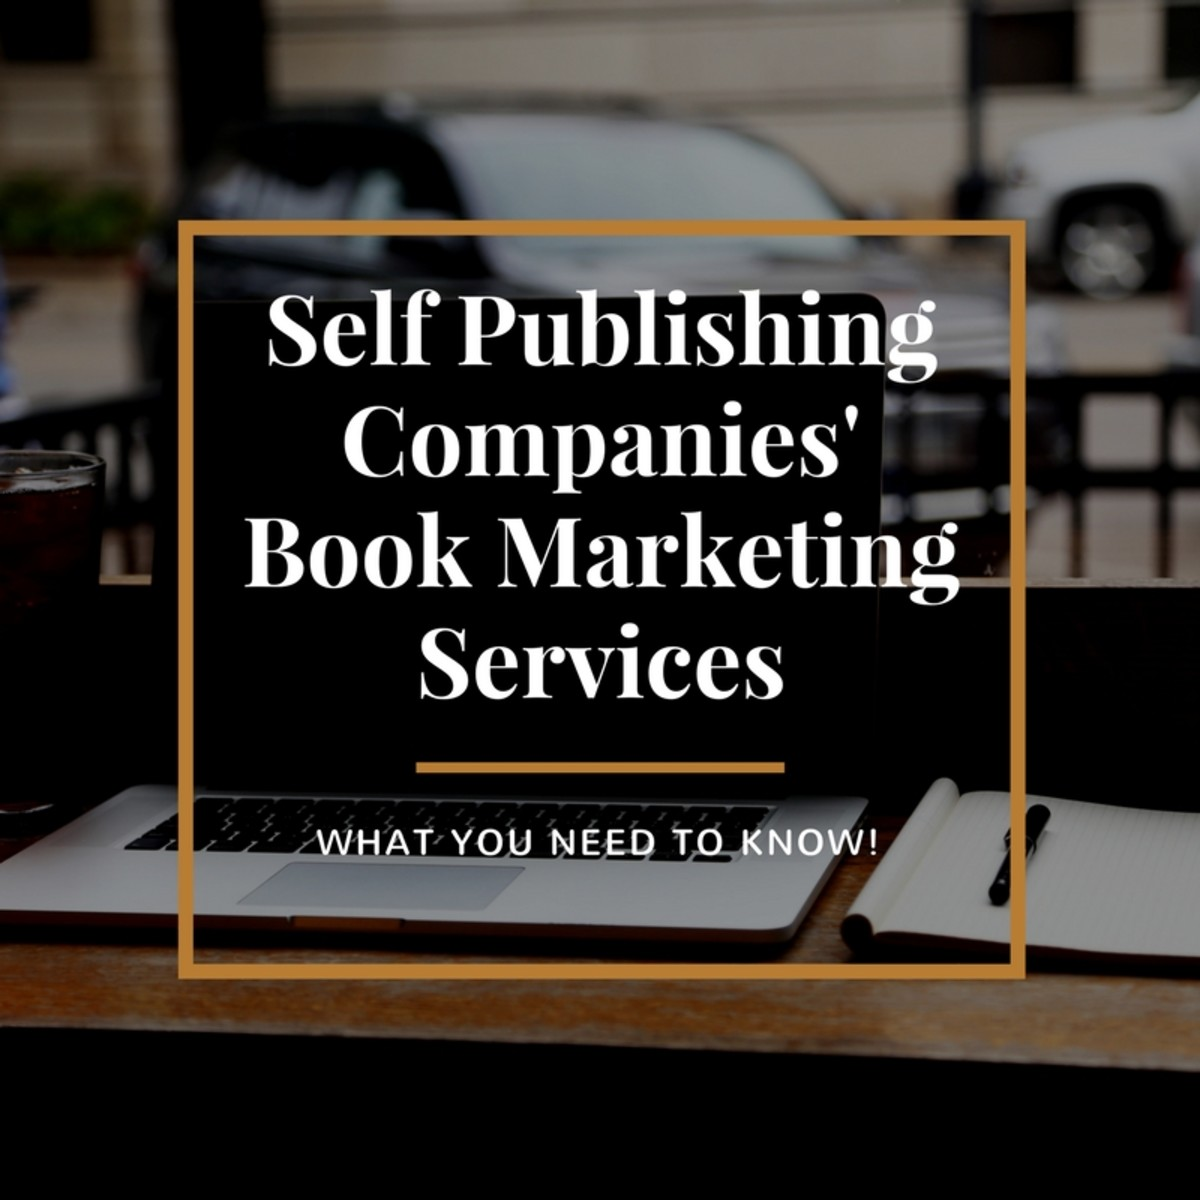 Book Marketing Services: What You Need to Know